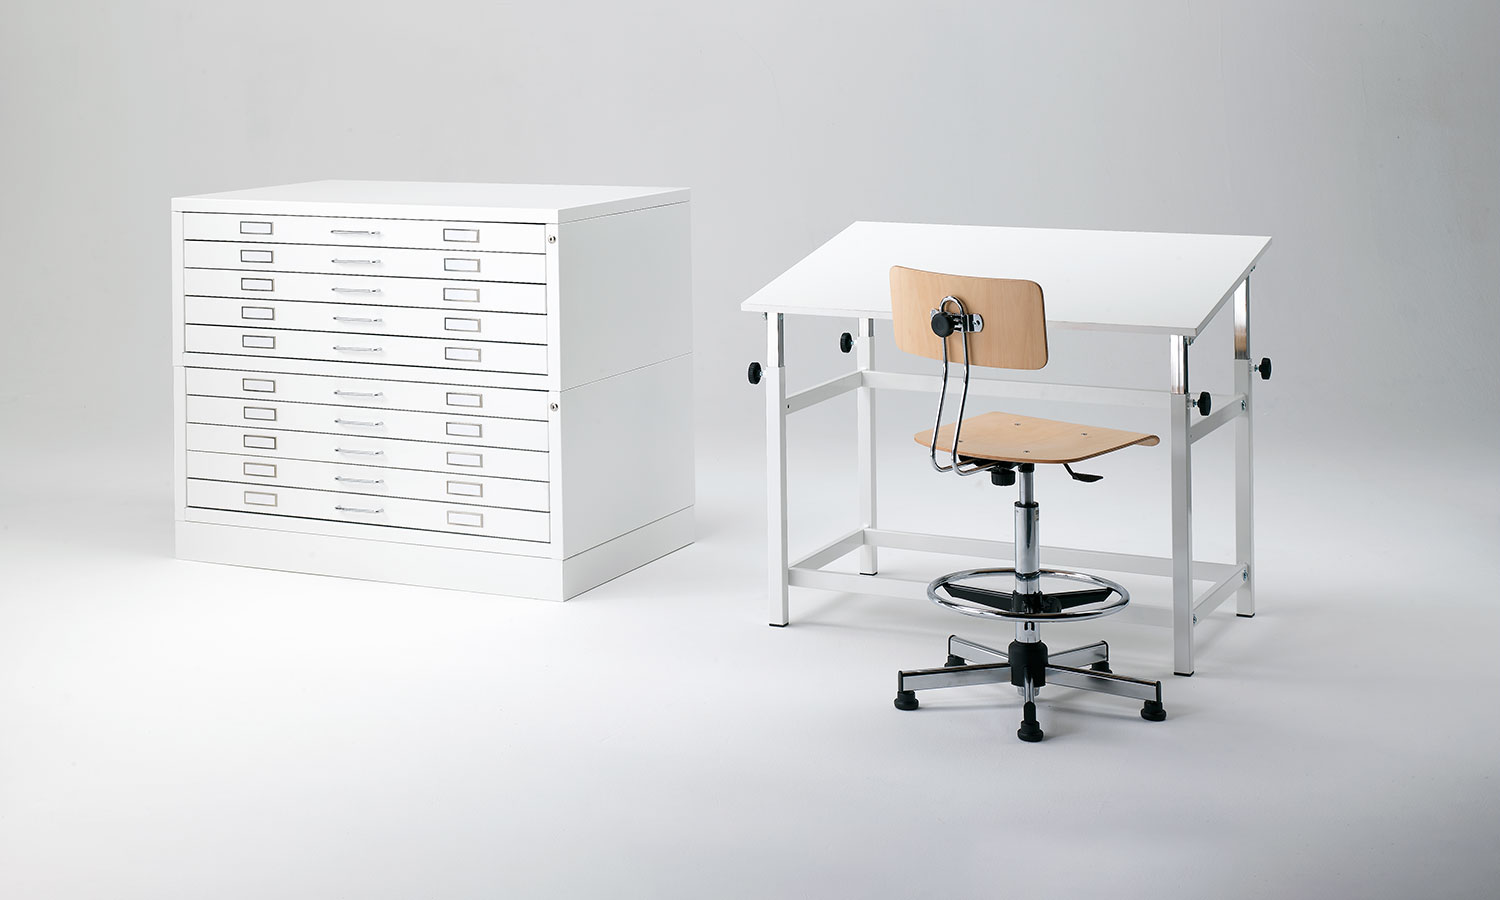 Drafting table dimensions - Architect Drafting Table